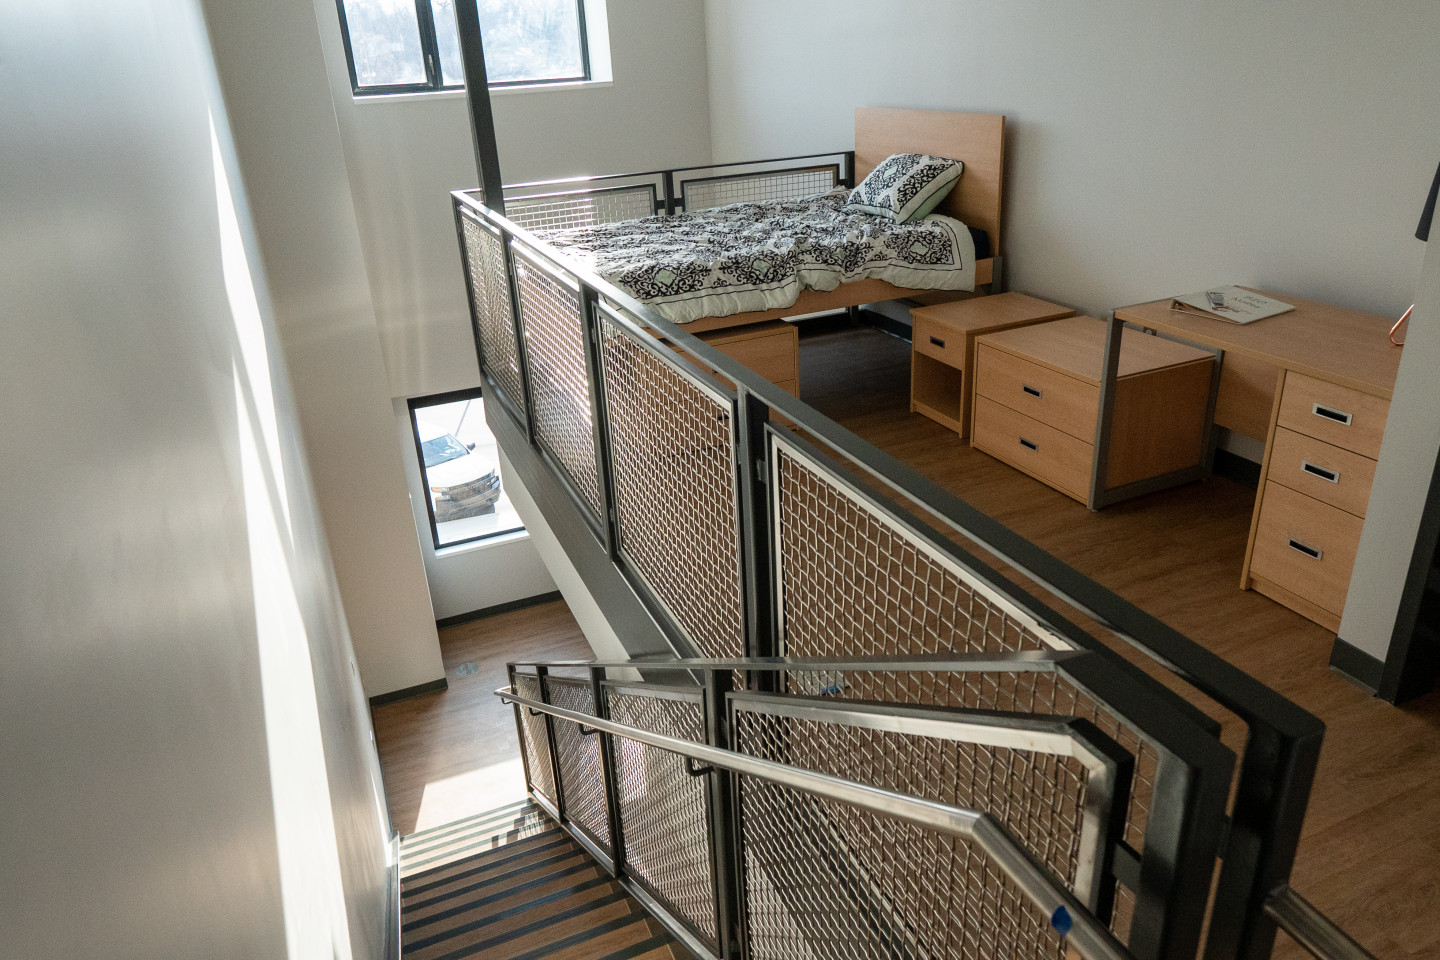 A bed in a loft area of an apartment.